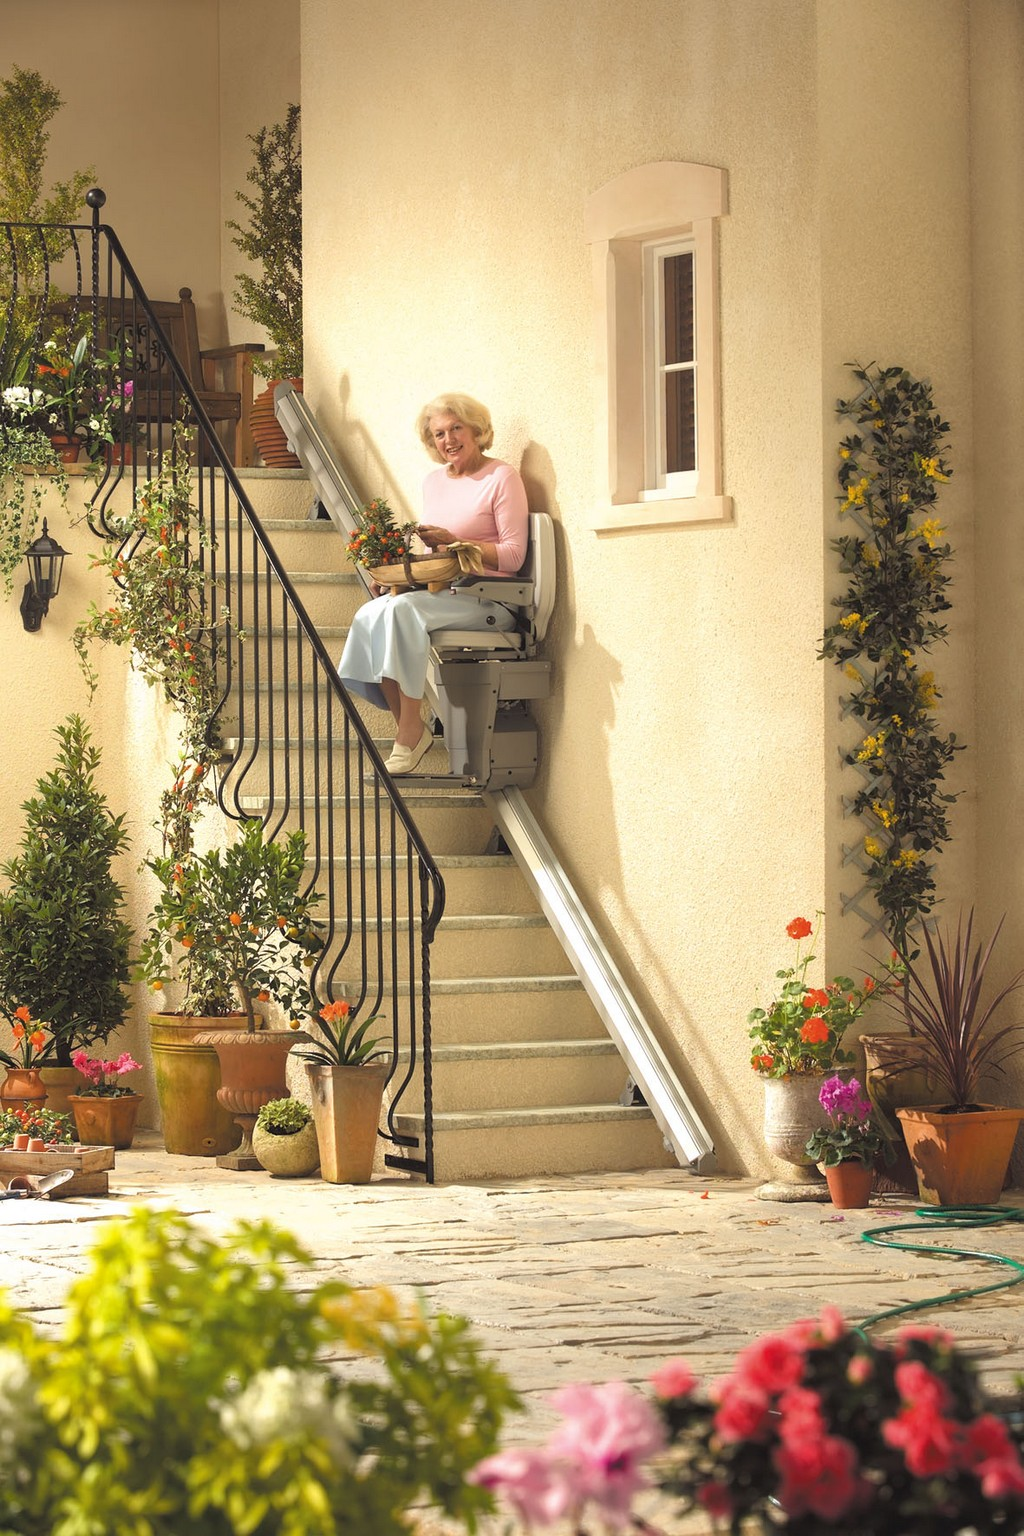 stair chair lift uk, electric stair lifts, acorn stairlifts prices, acorn superlide stair lift